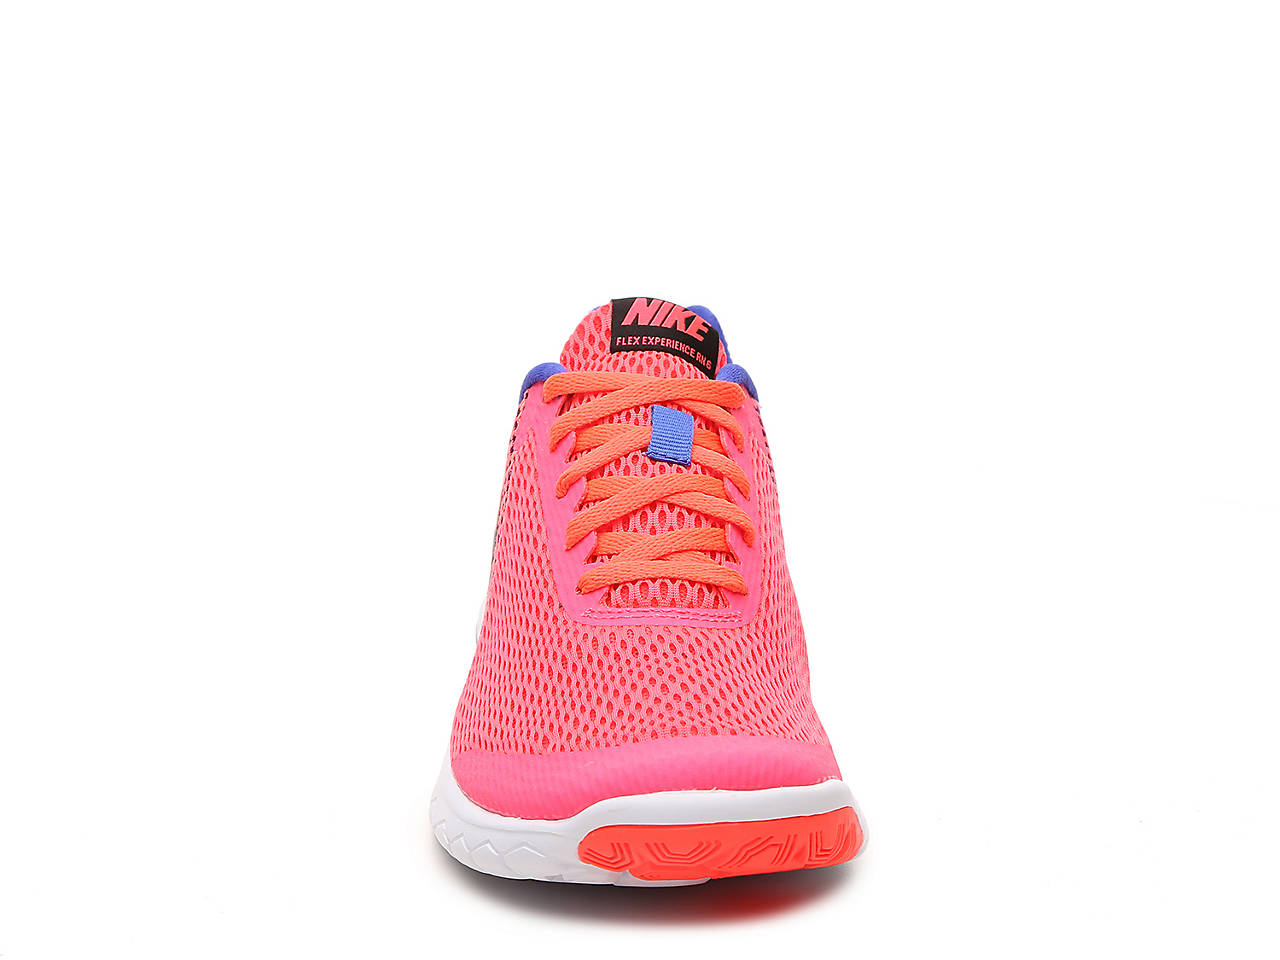 c035de0124e3 Nike Flex Experience Run 6 Lightweight Running Shoe - Women s ...